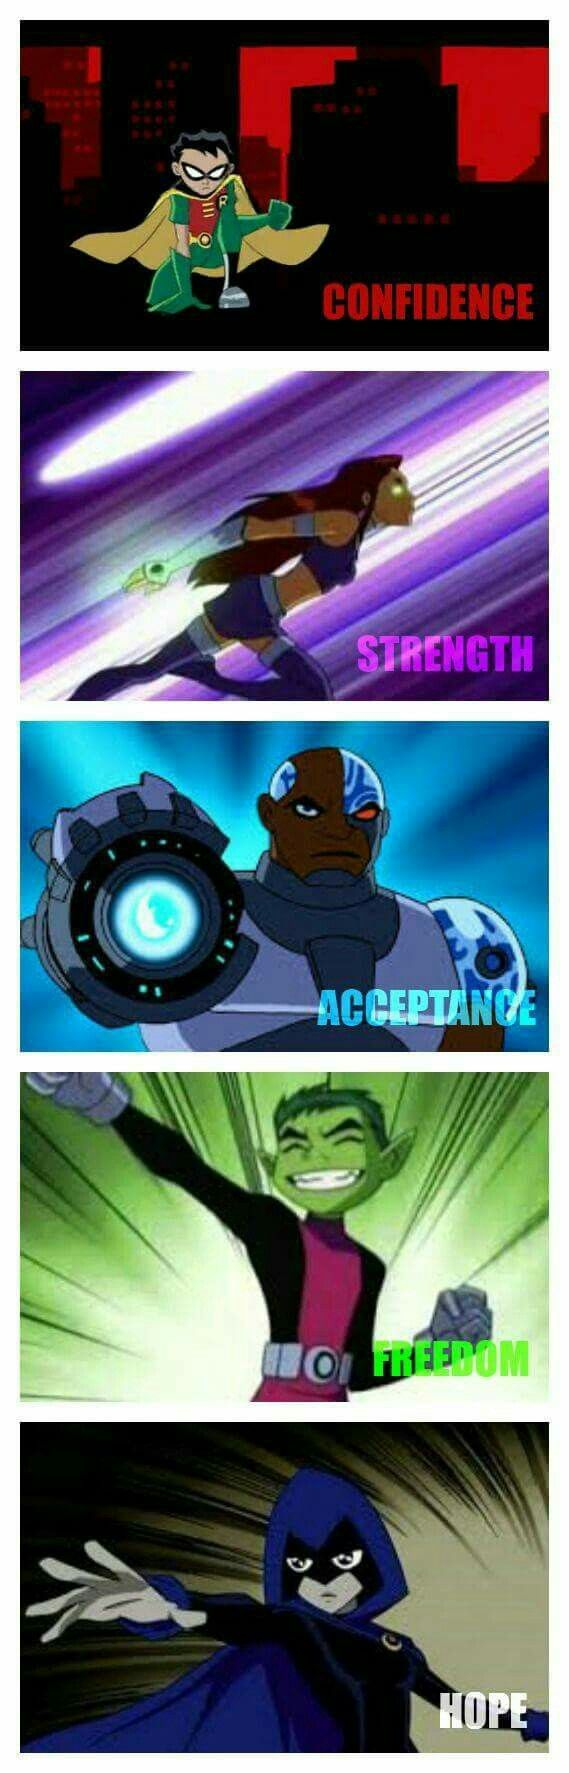 Teen Titans traits